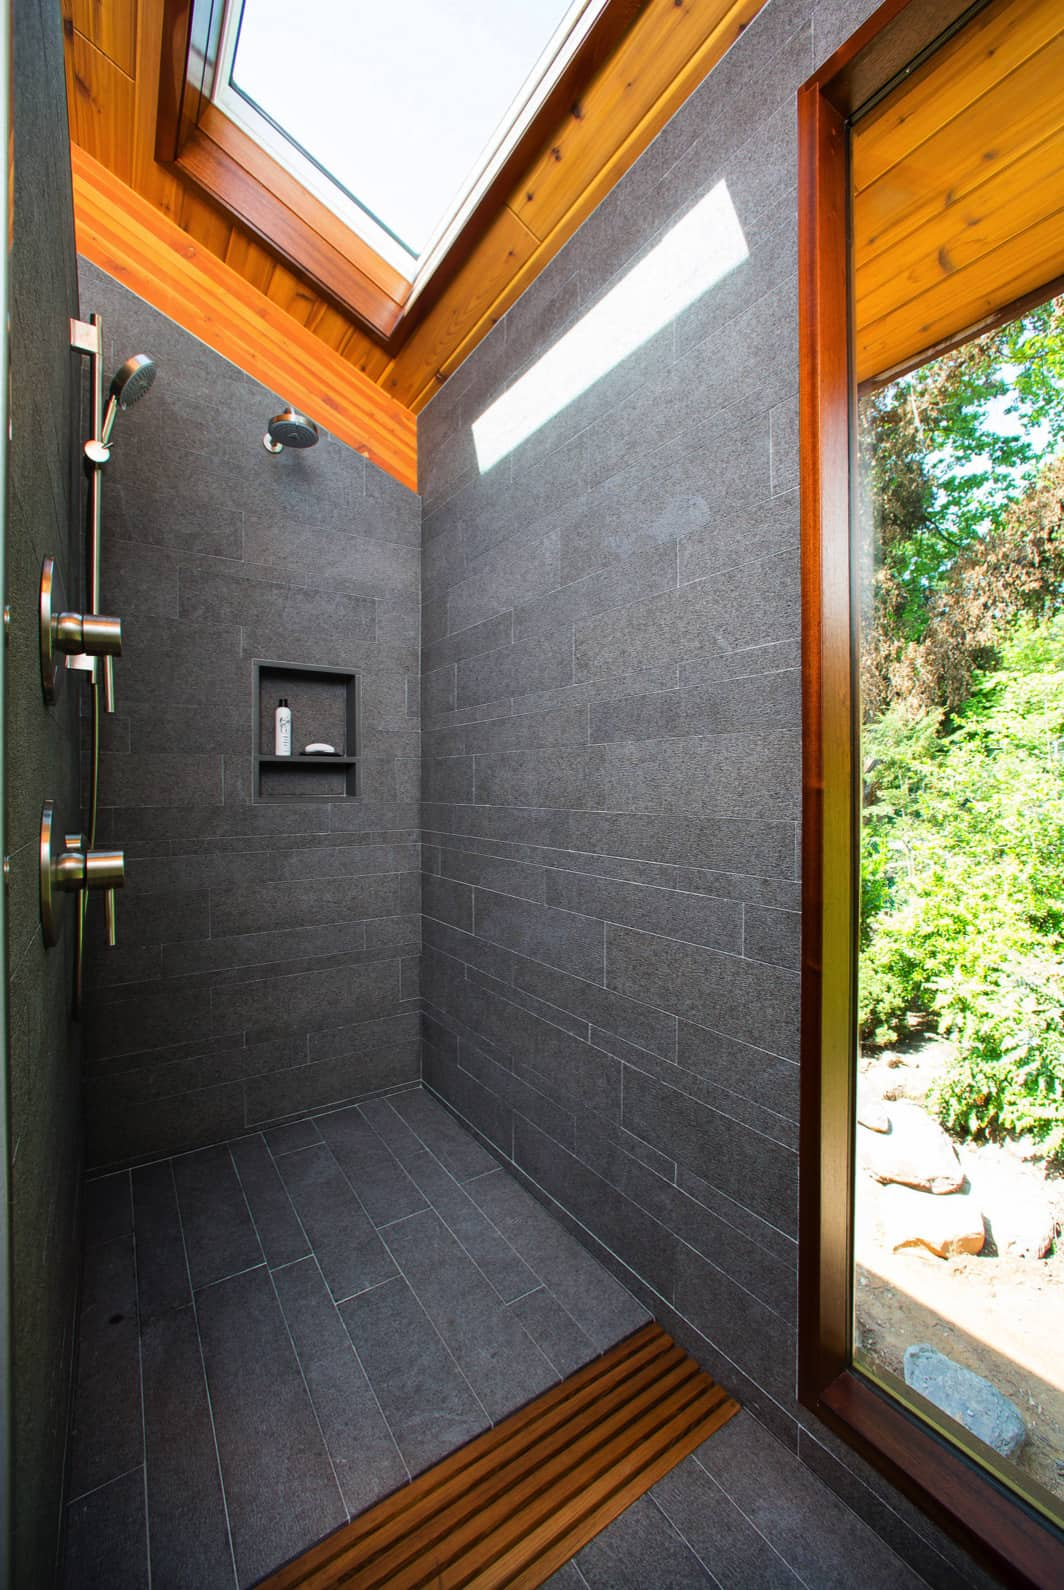 walk-in-shower-with-a-skylight